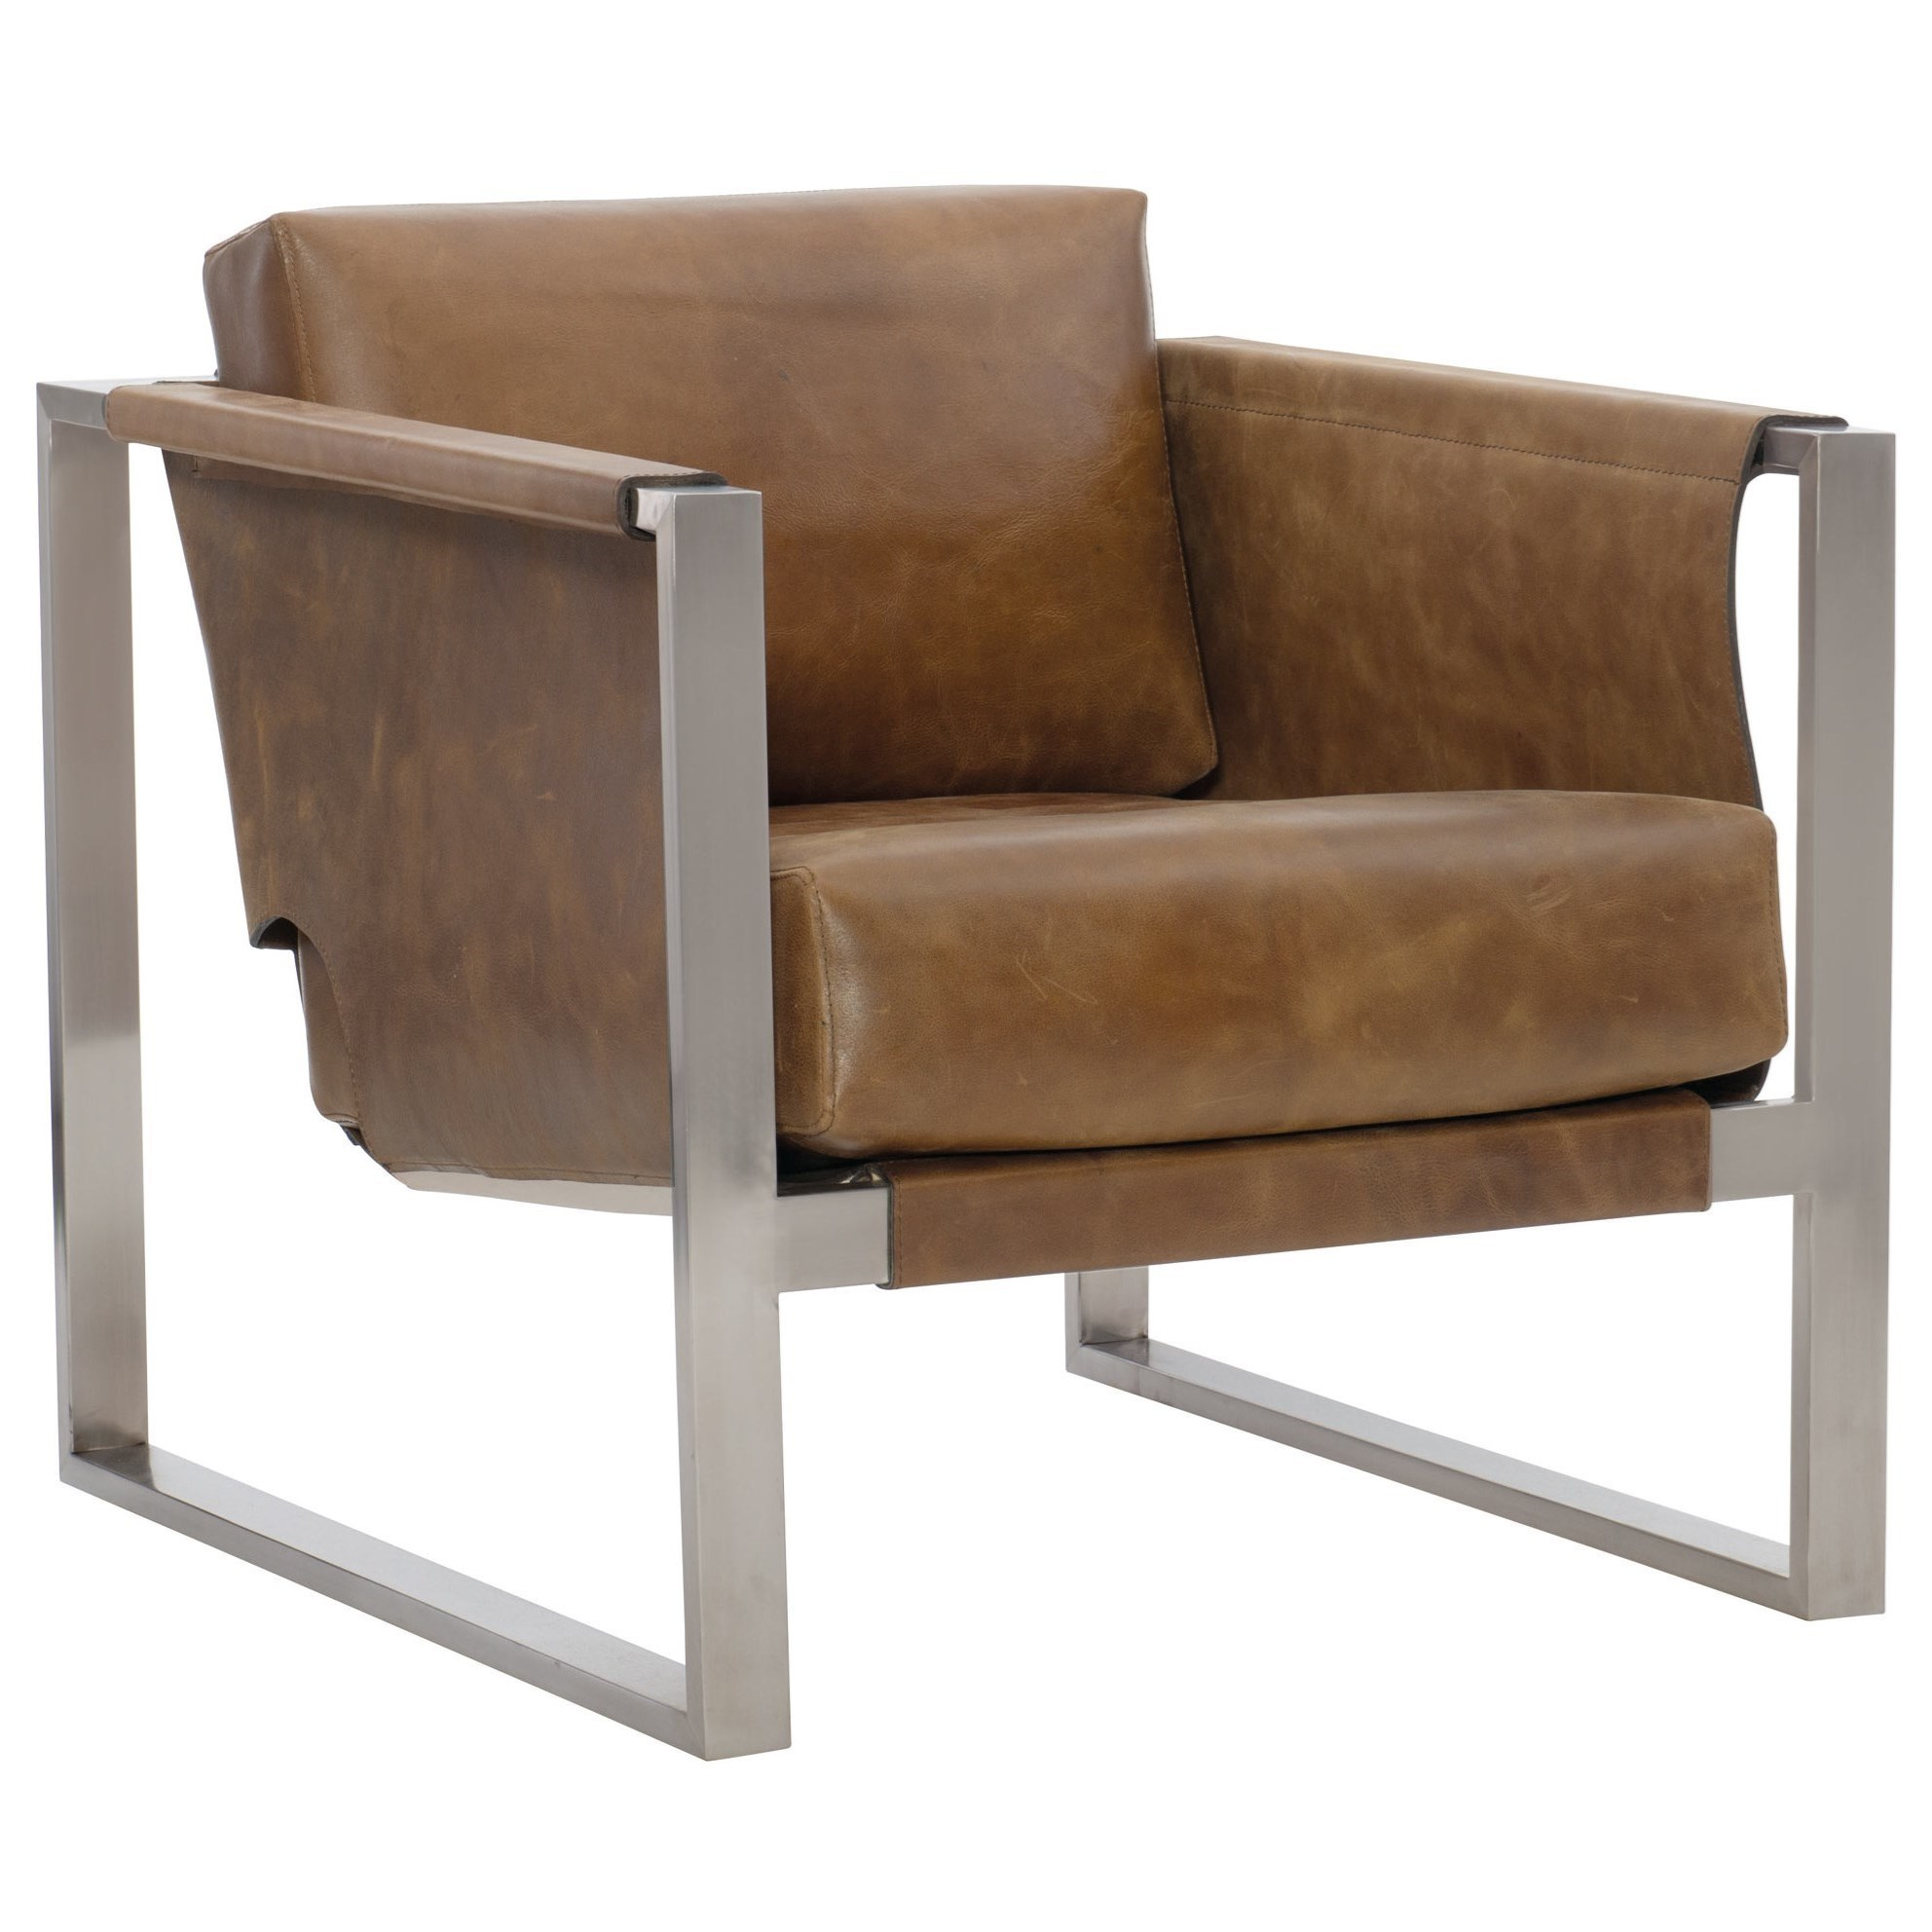 Bernhardt Segovia 5622L Contemporary Leather Chair With Metal Frame | John  V Schultz Furniture | Upholstered Chairs